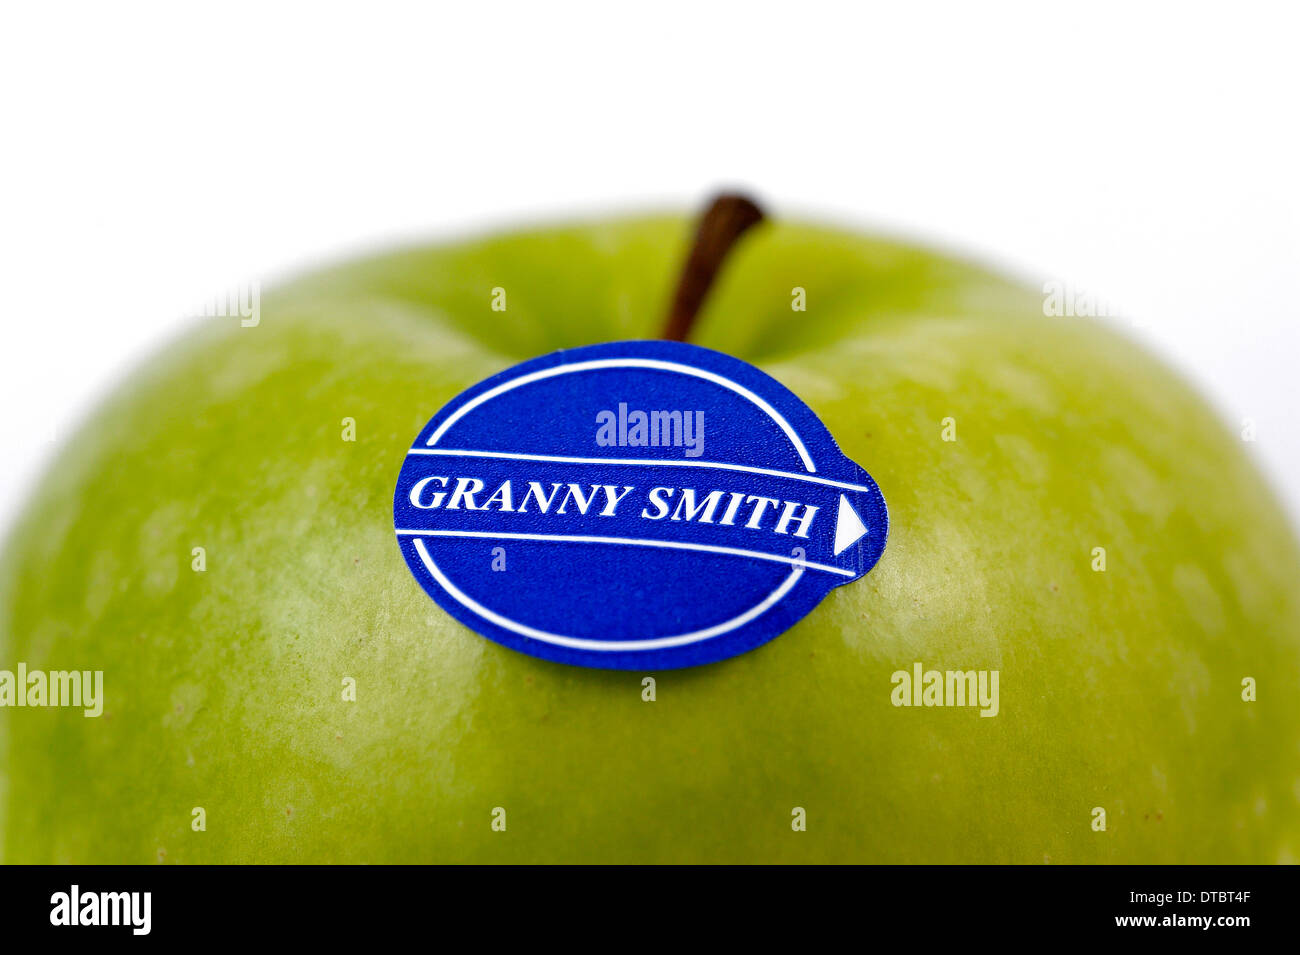 A Granny Smith apple on a white background - Stock Image